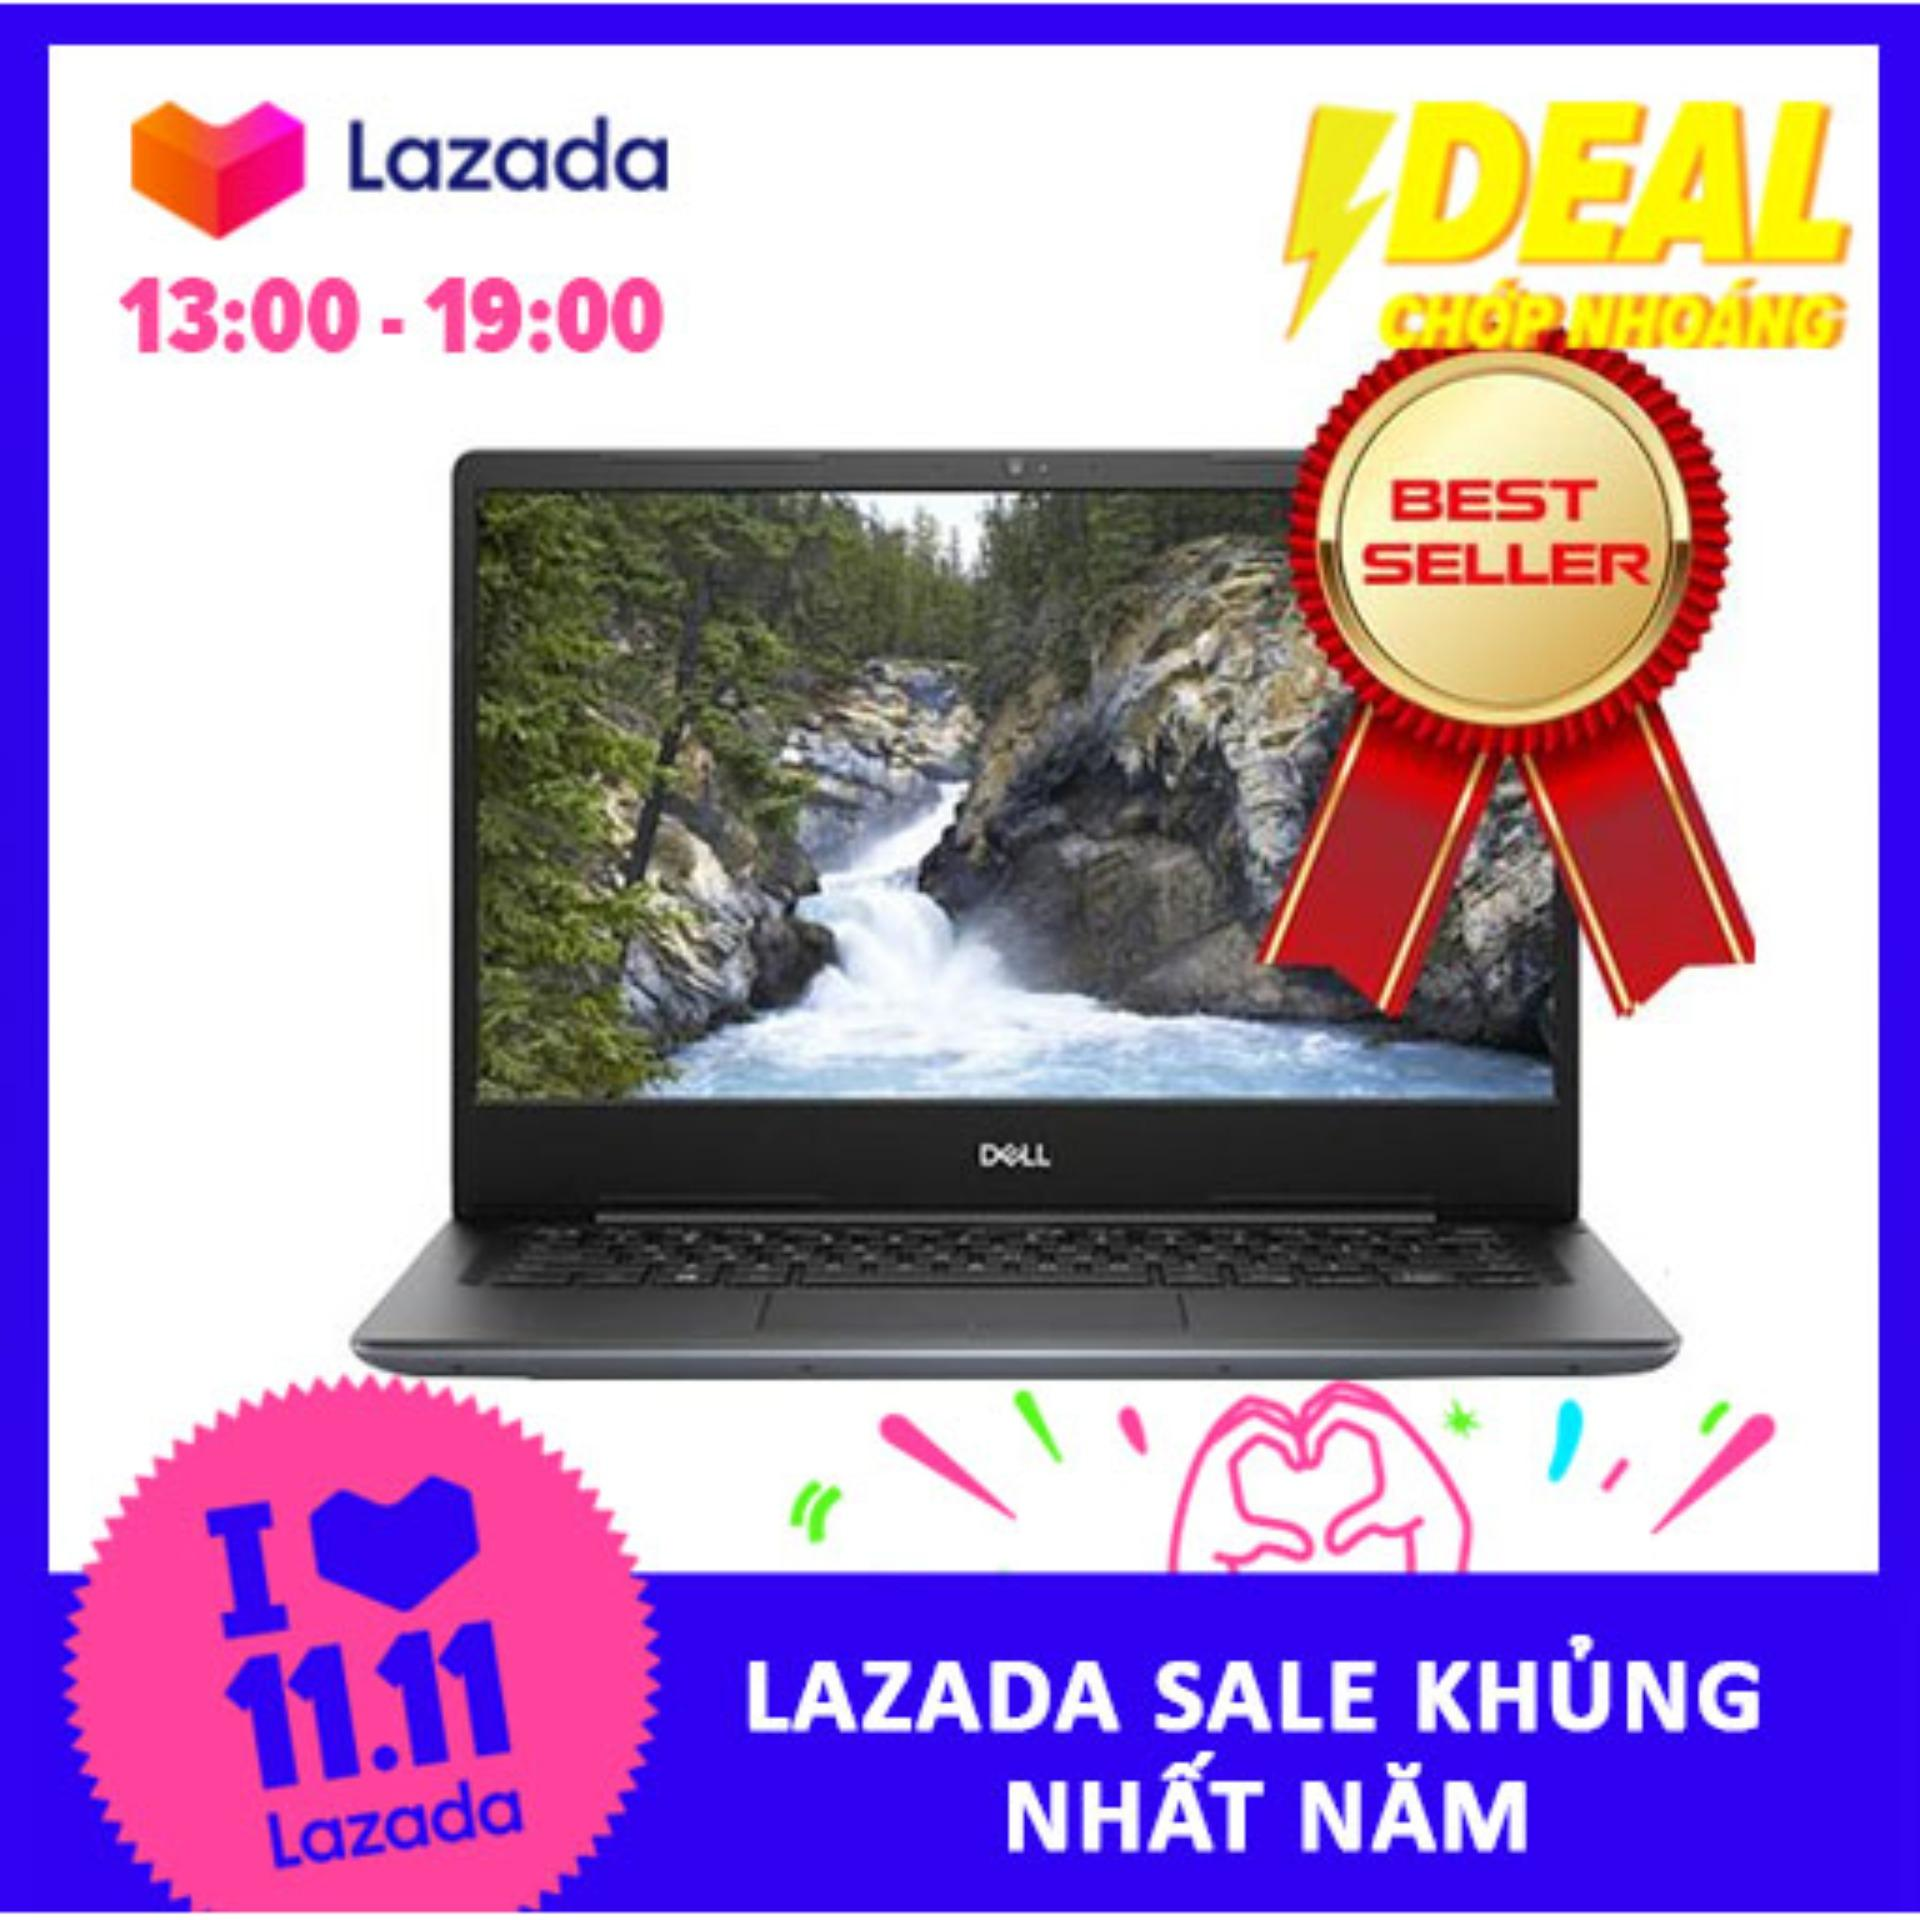 Dell Vostro 5581 : i5-8265U | 4GB RAM | 1TB HDD | UHD Graphics 620 | 15.6 FHD IPS | Finger | Ledkey | Win 10